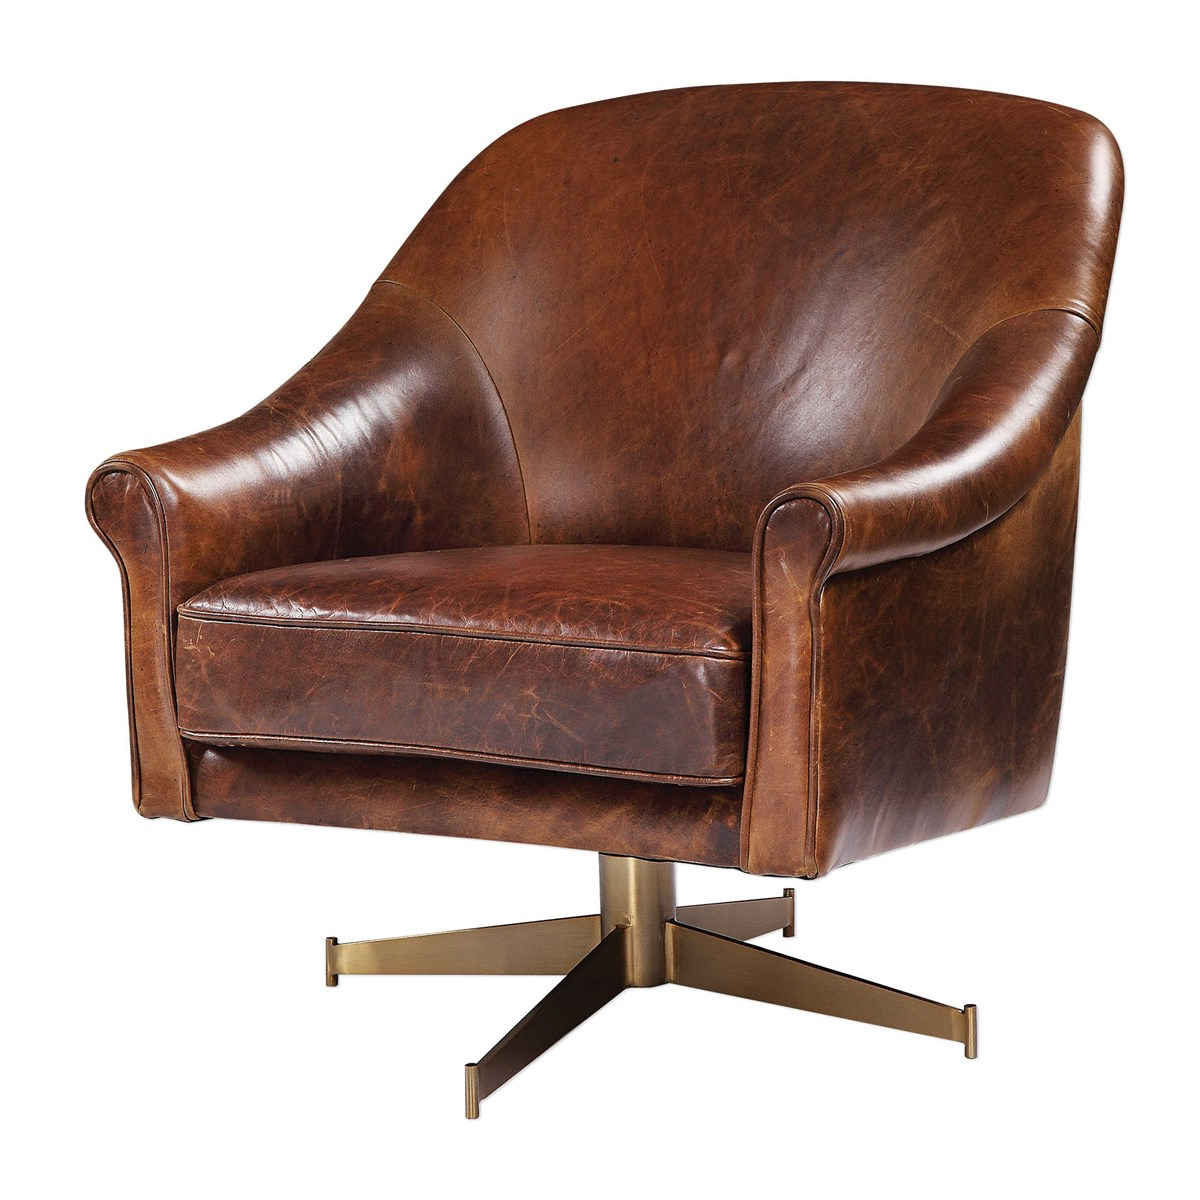 Langham Leather Swivel Club Chair With Regard To Recent Montenegro Faux Leather Club Chairs (View 6 of 20)